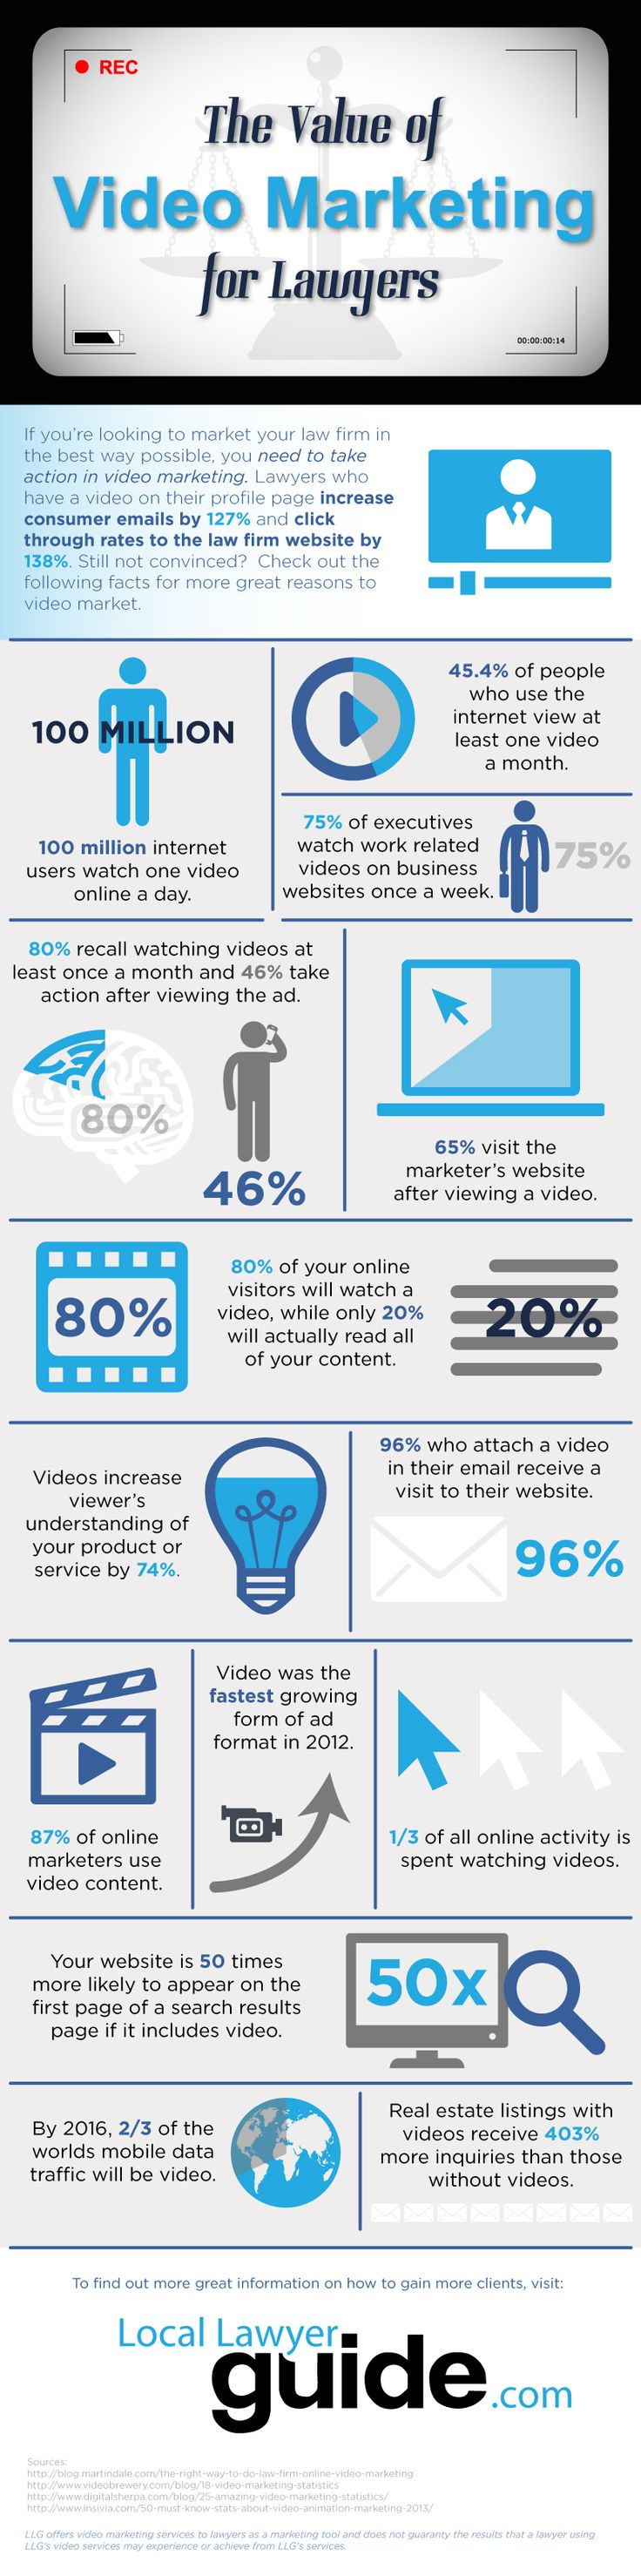 The Value of Video Marketing For Lawyers